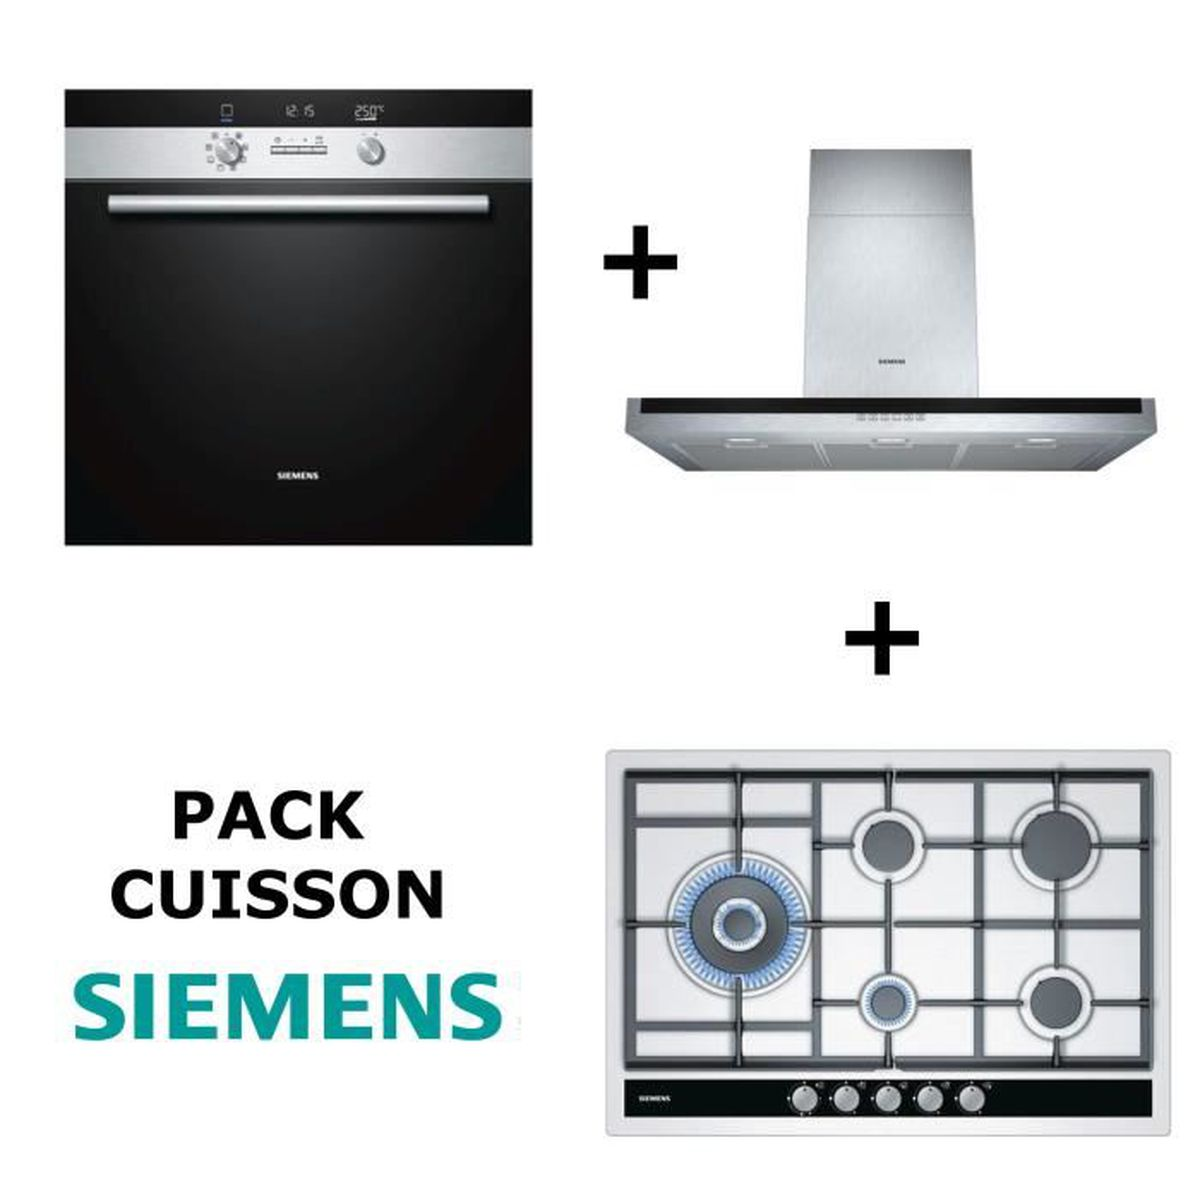 siemens pack cuisson four multifonction pyrolyse. Black Bedroom Furniture Sets. Home Design Ideas